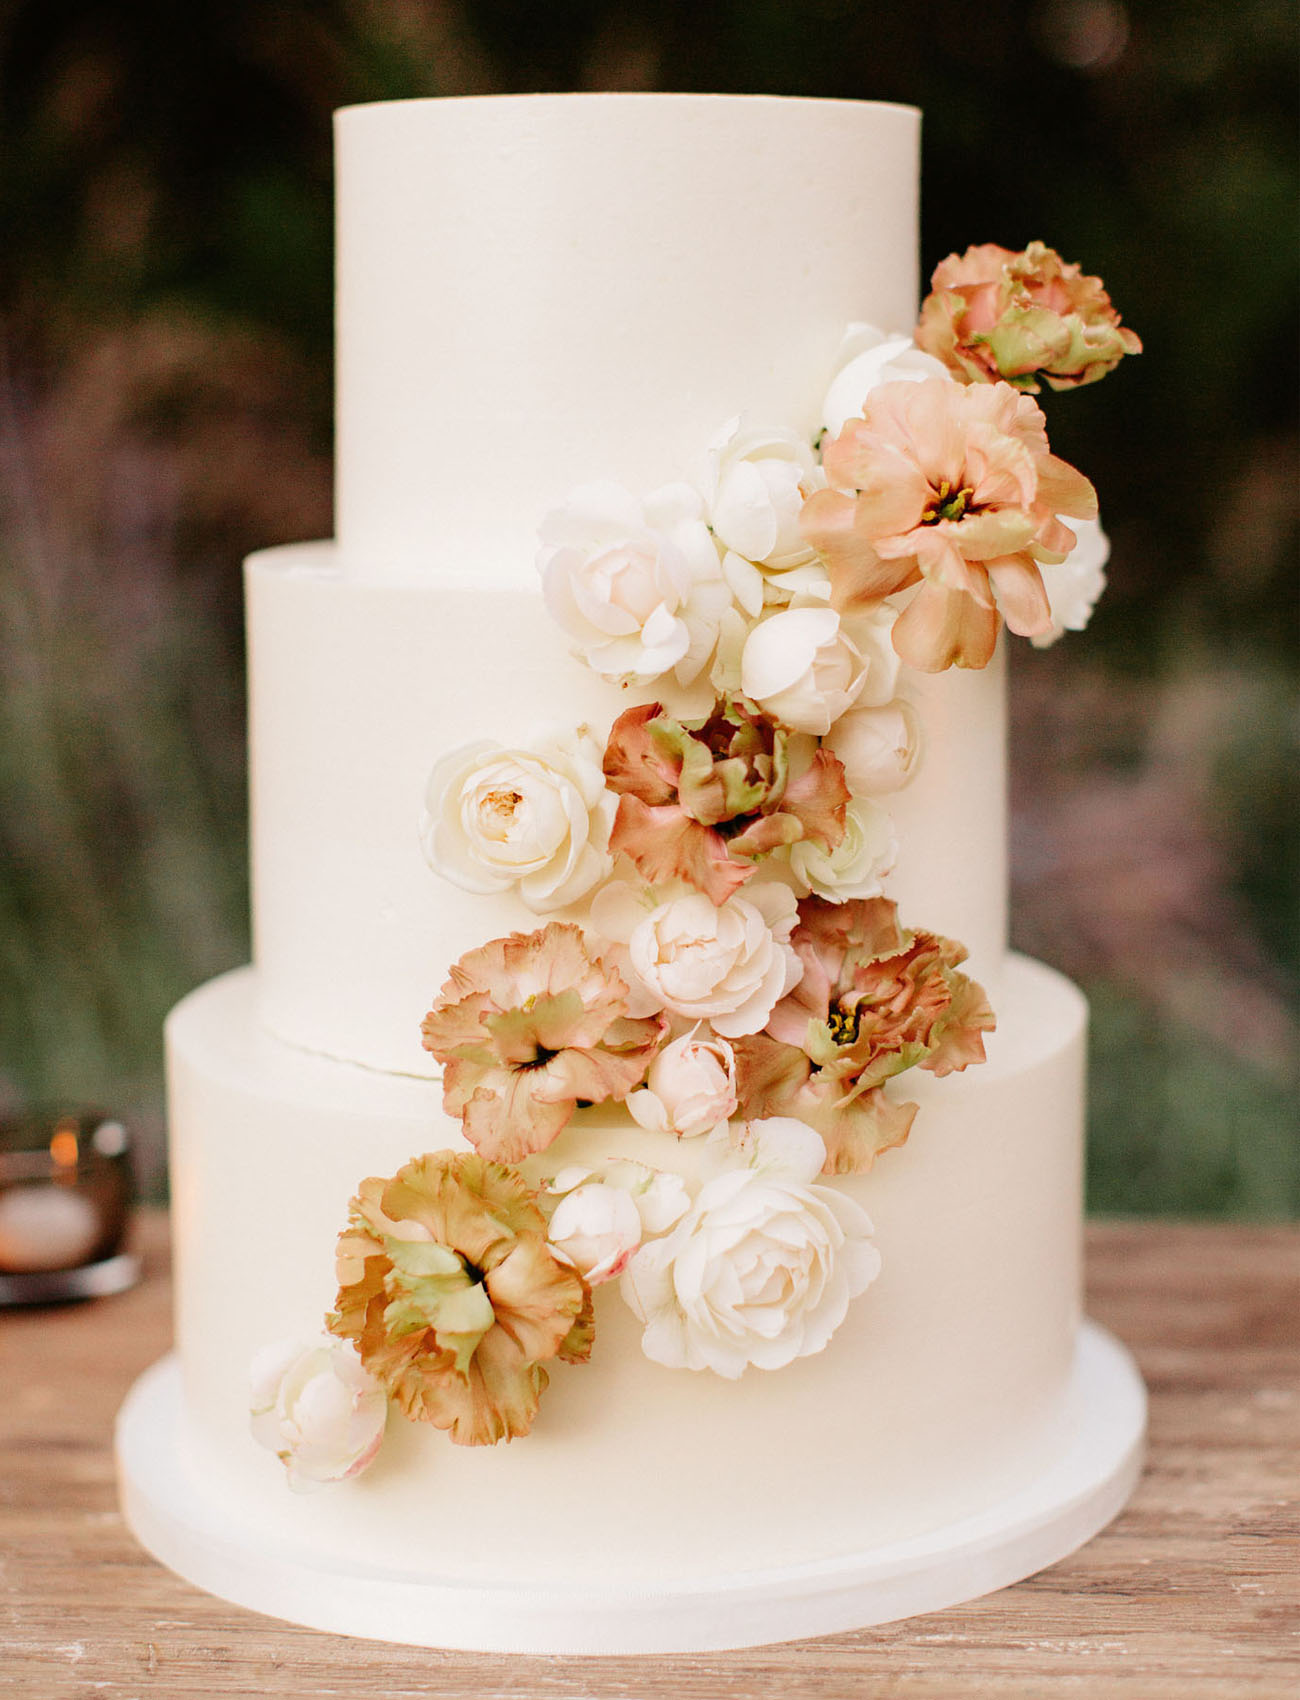 bc637499261 15 Jaw-Dropping Floral Cake Ideas for Your Wedding - Green Wedding Shoes